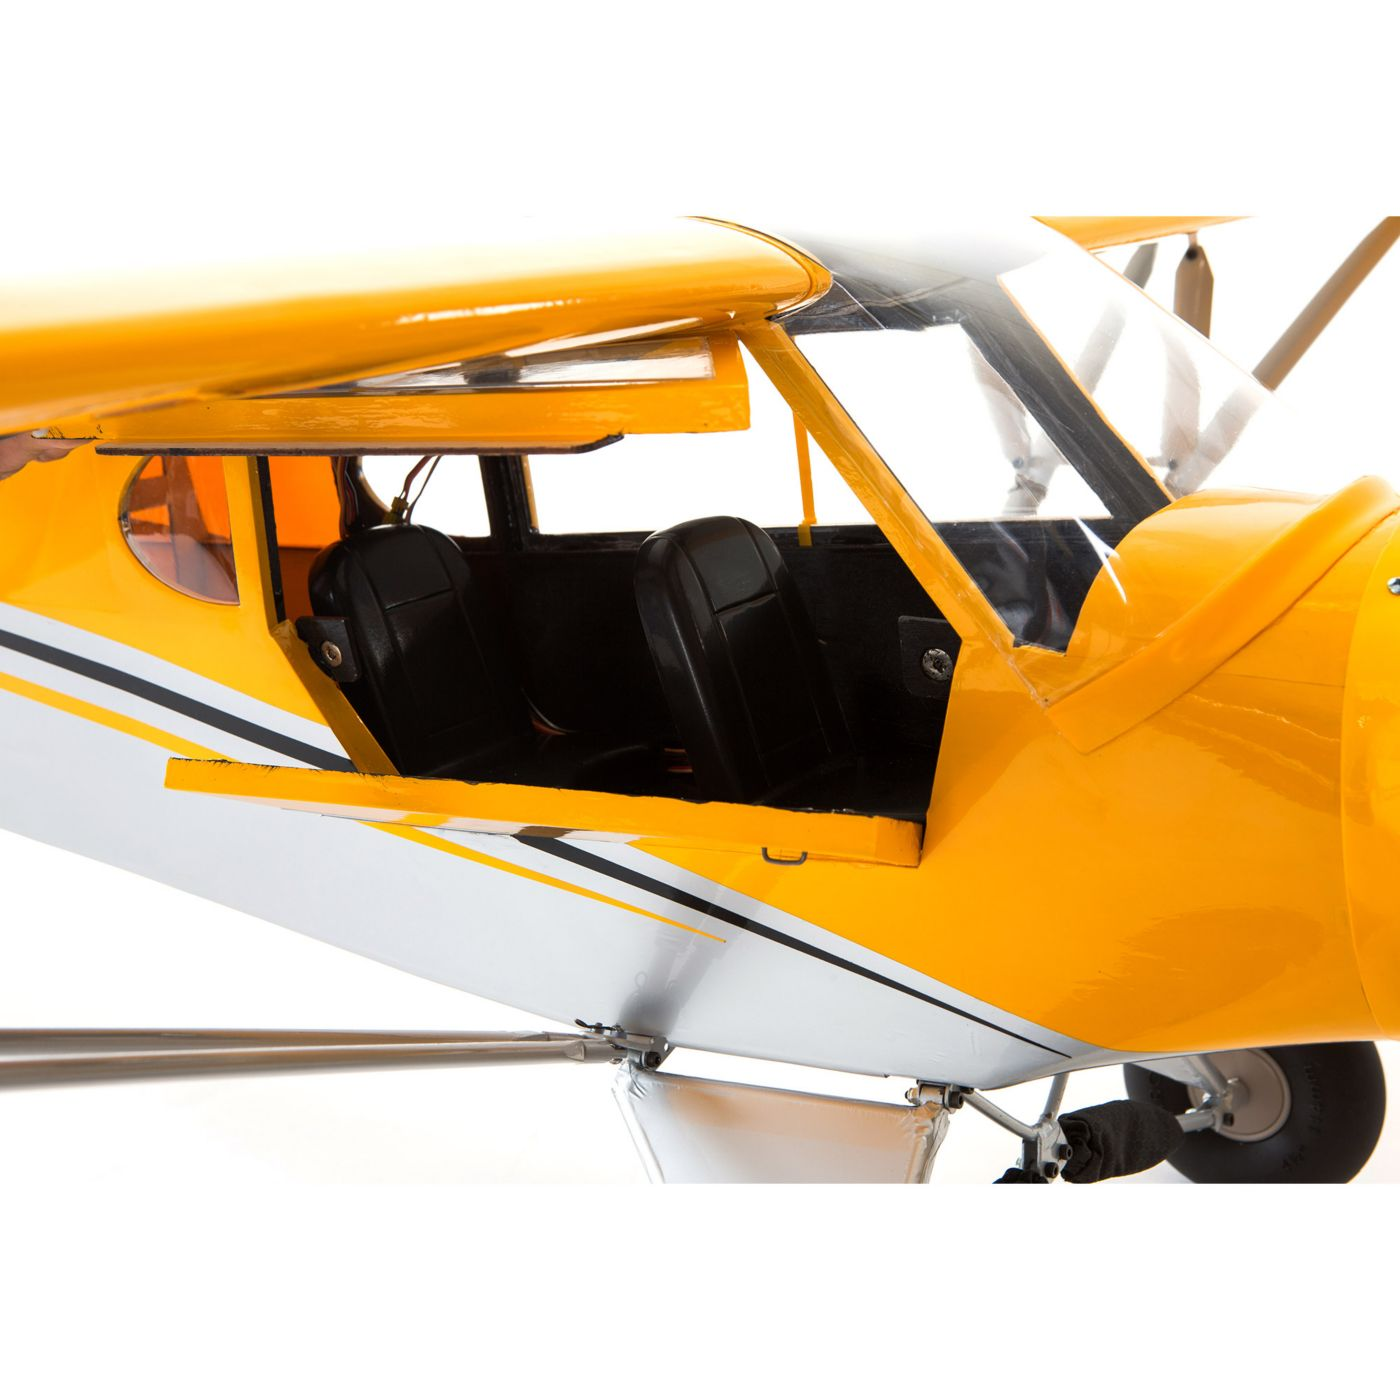 Hangar 9 Carbon Cub RC Airplane: Doors open.